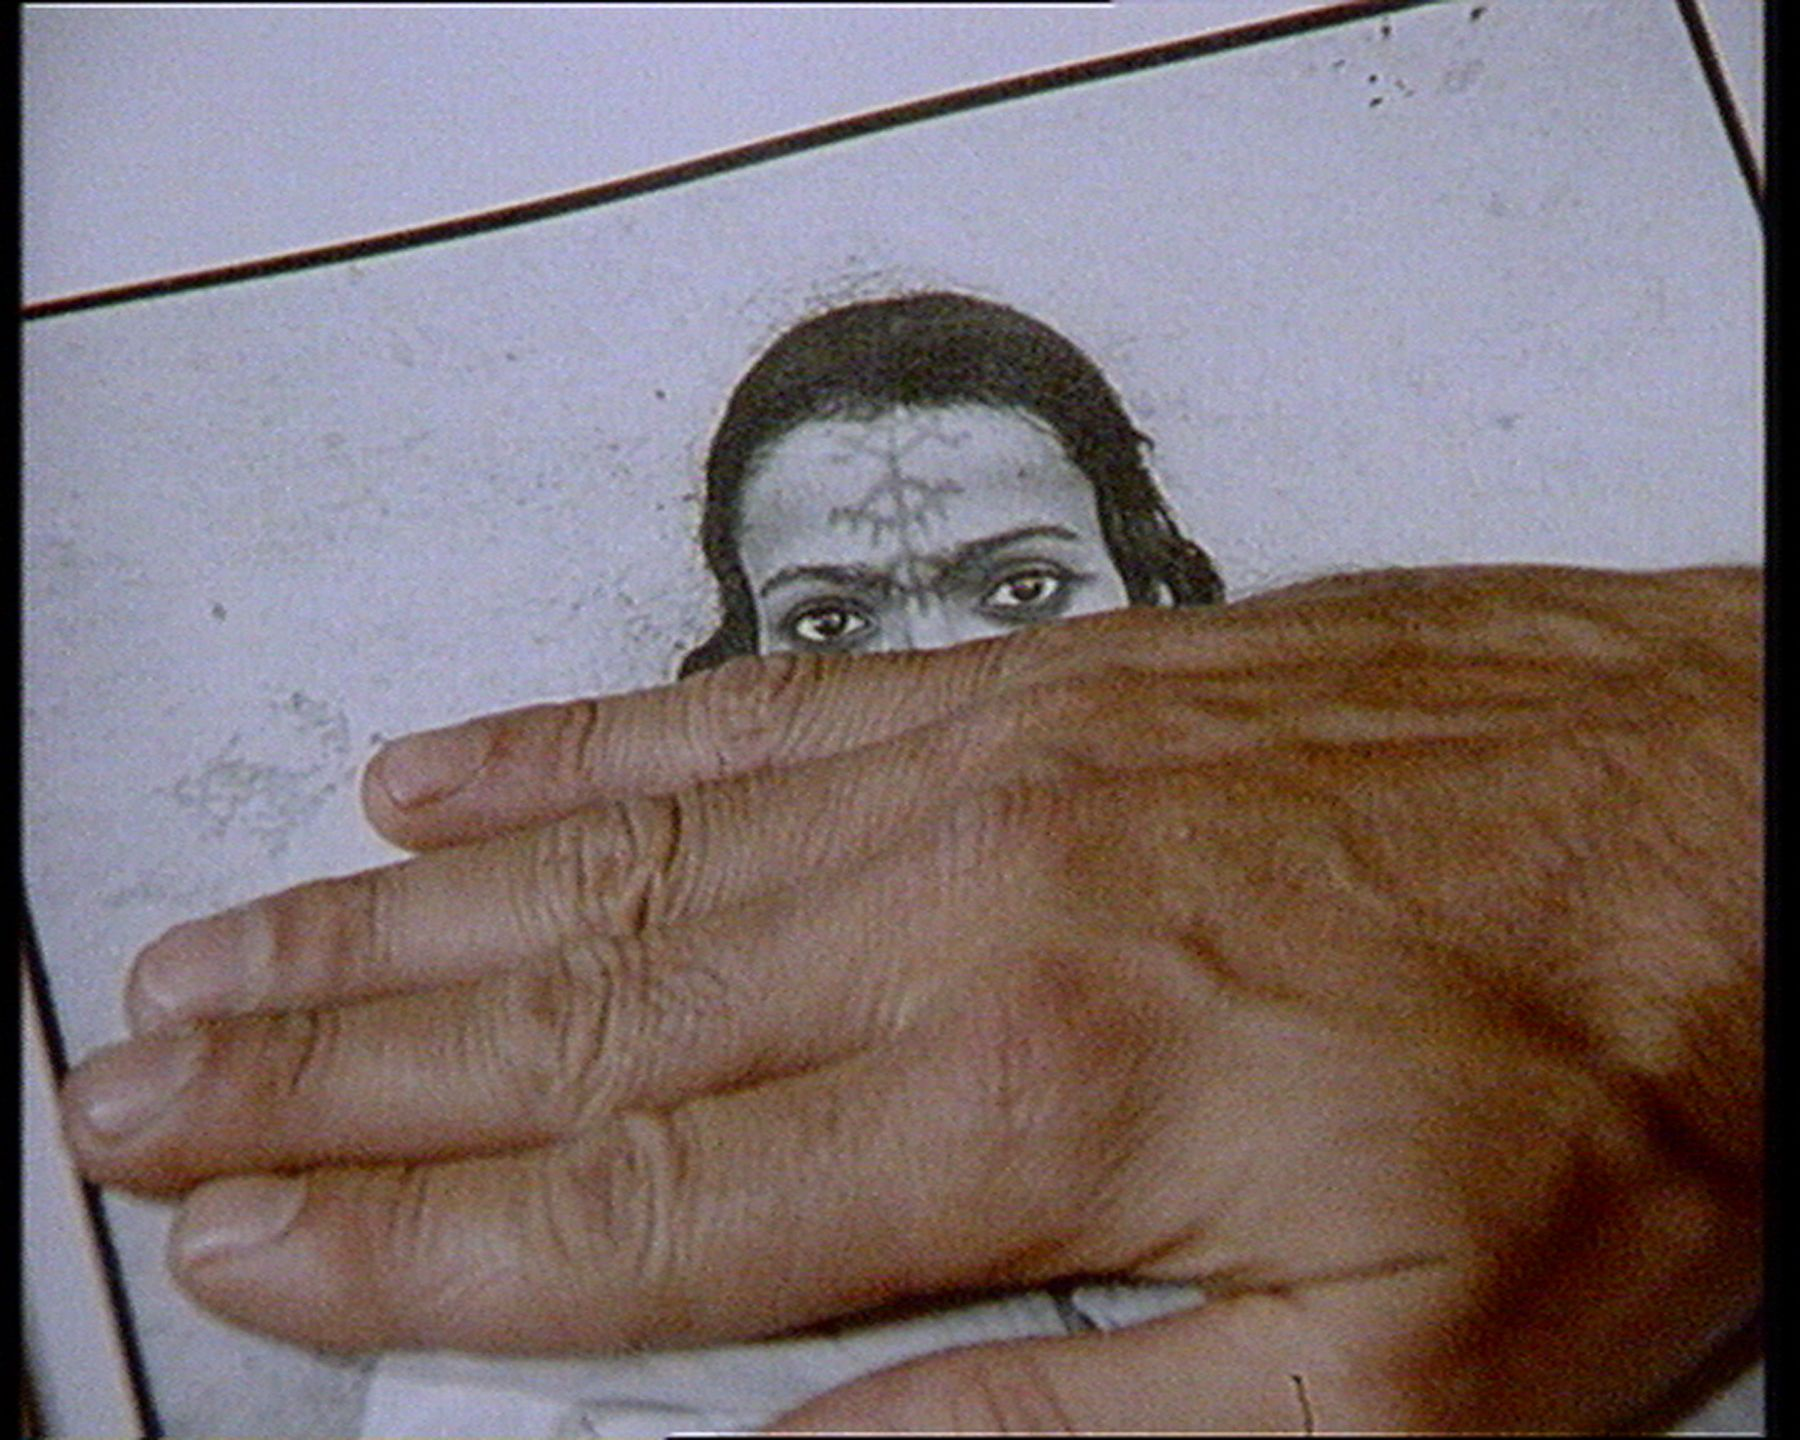 Images of the World and the Inscription of War, 1988 (still)